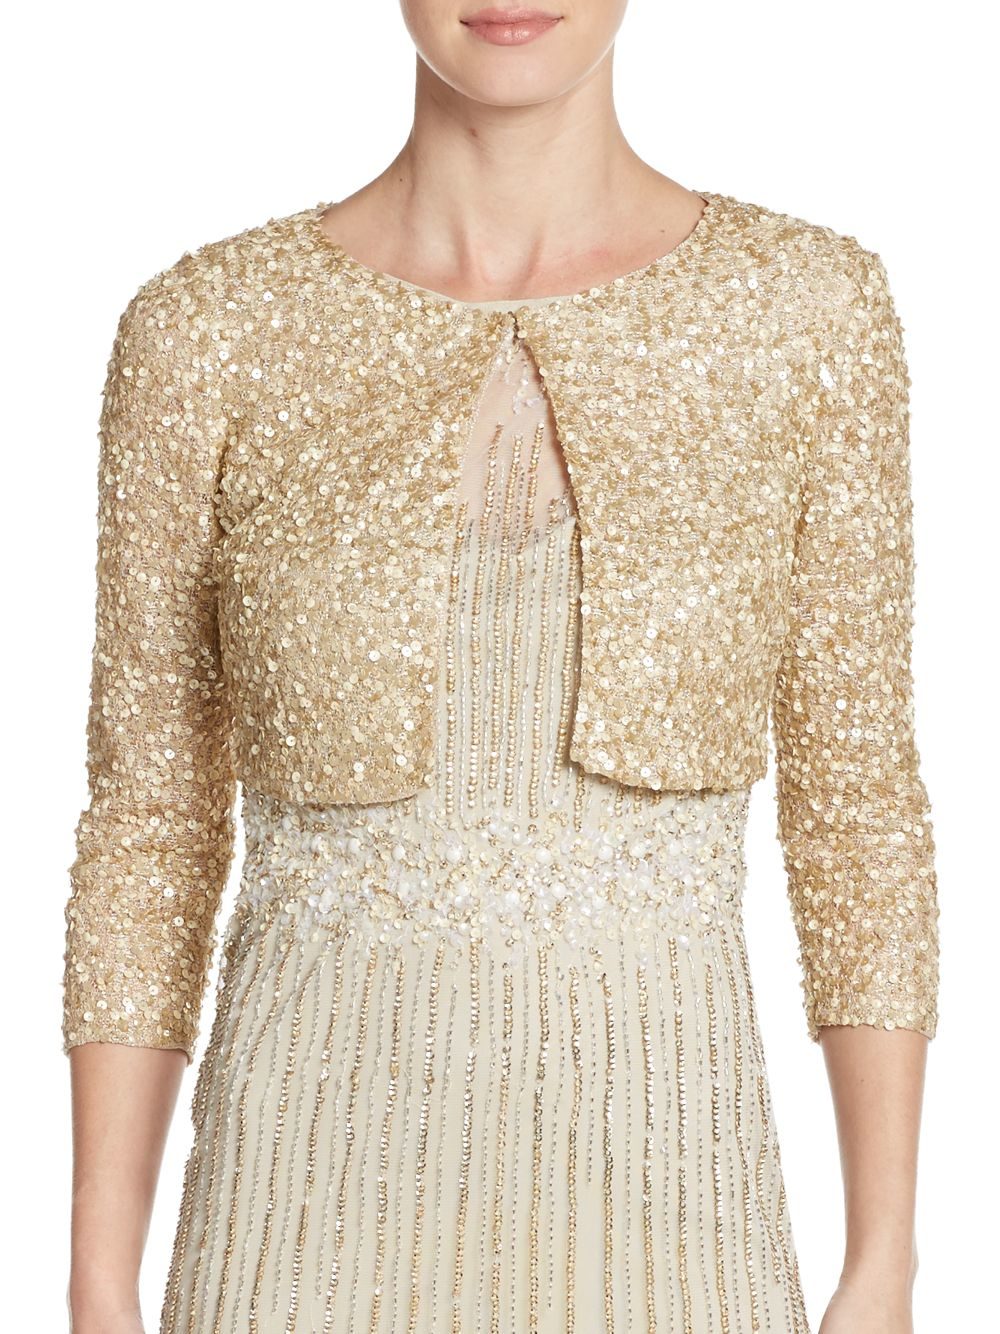 Aidan mattox Metallic Cropped Cardigan in Metallic | Lyst